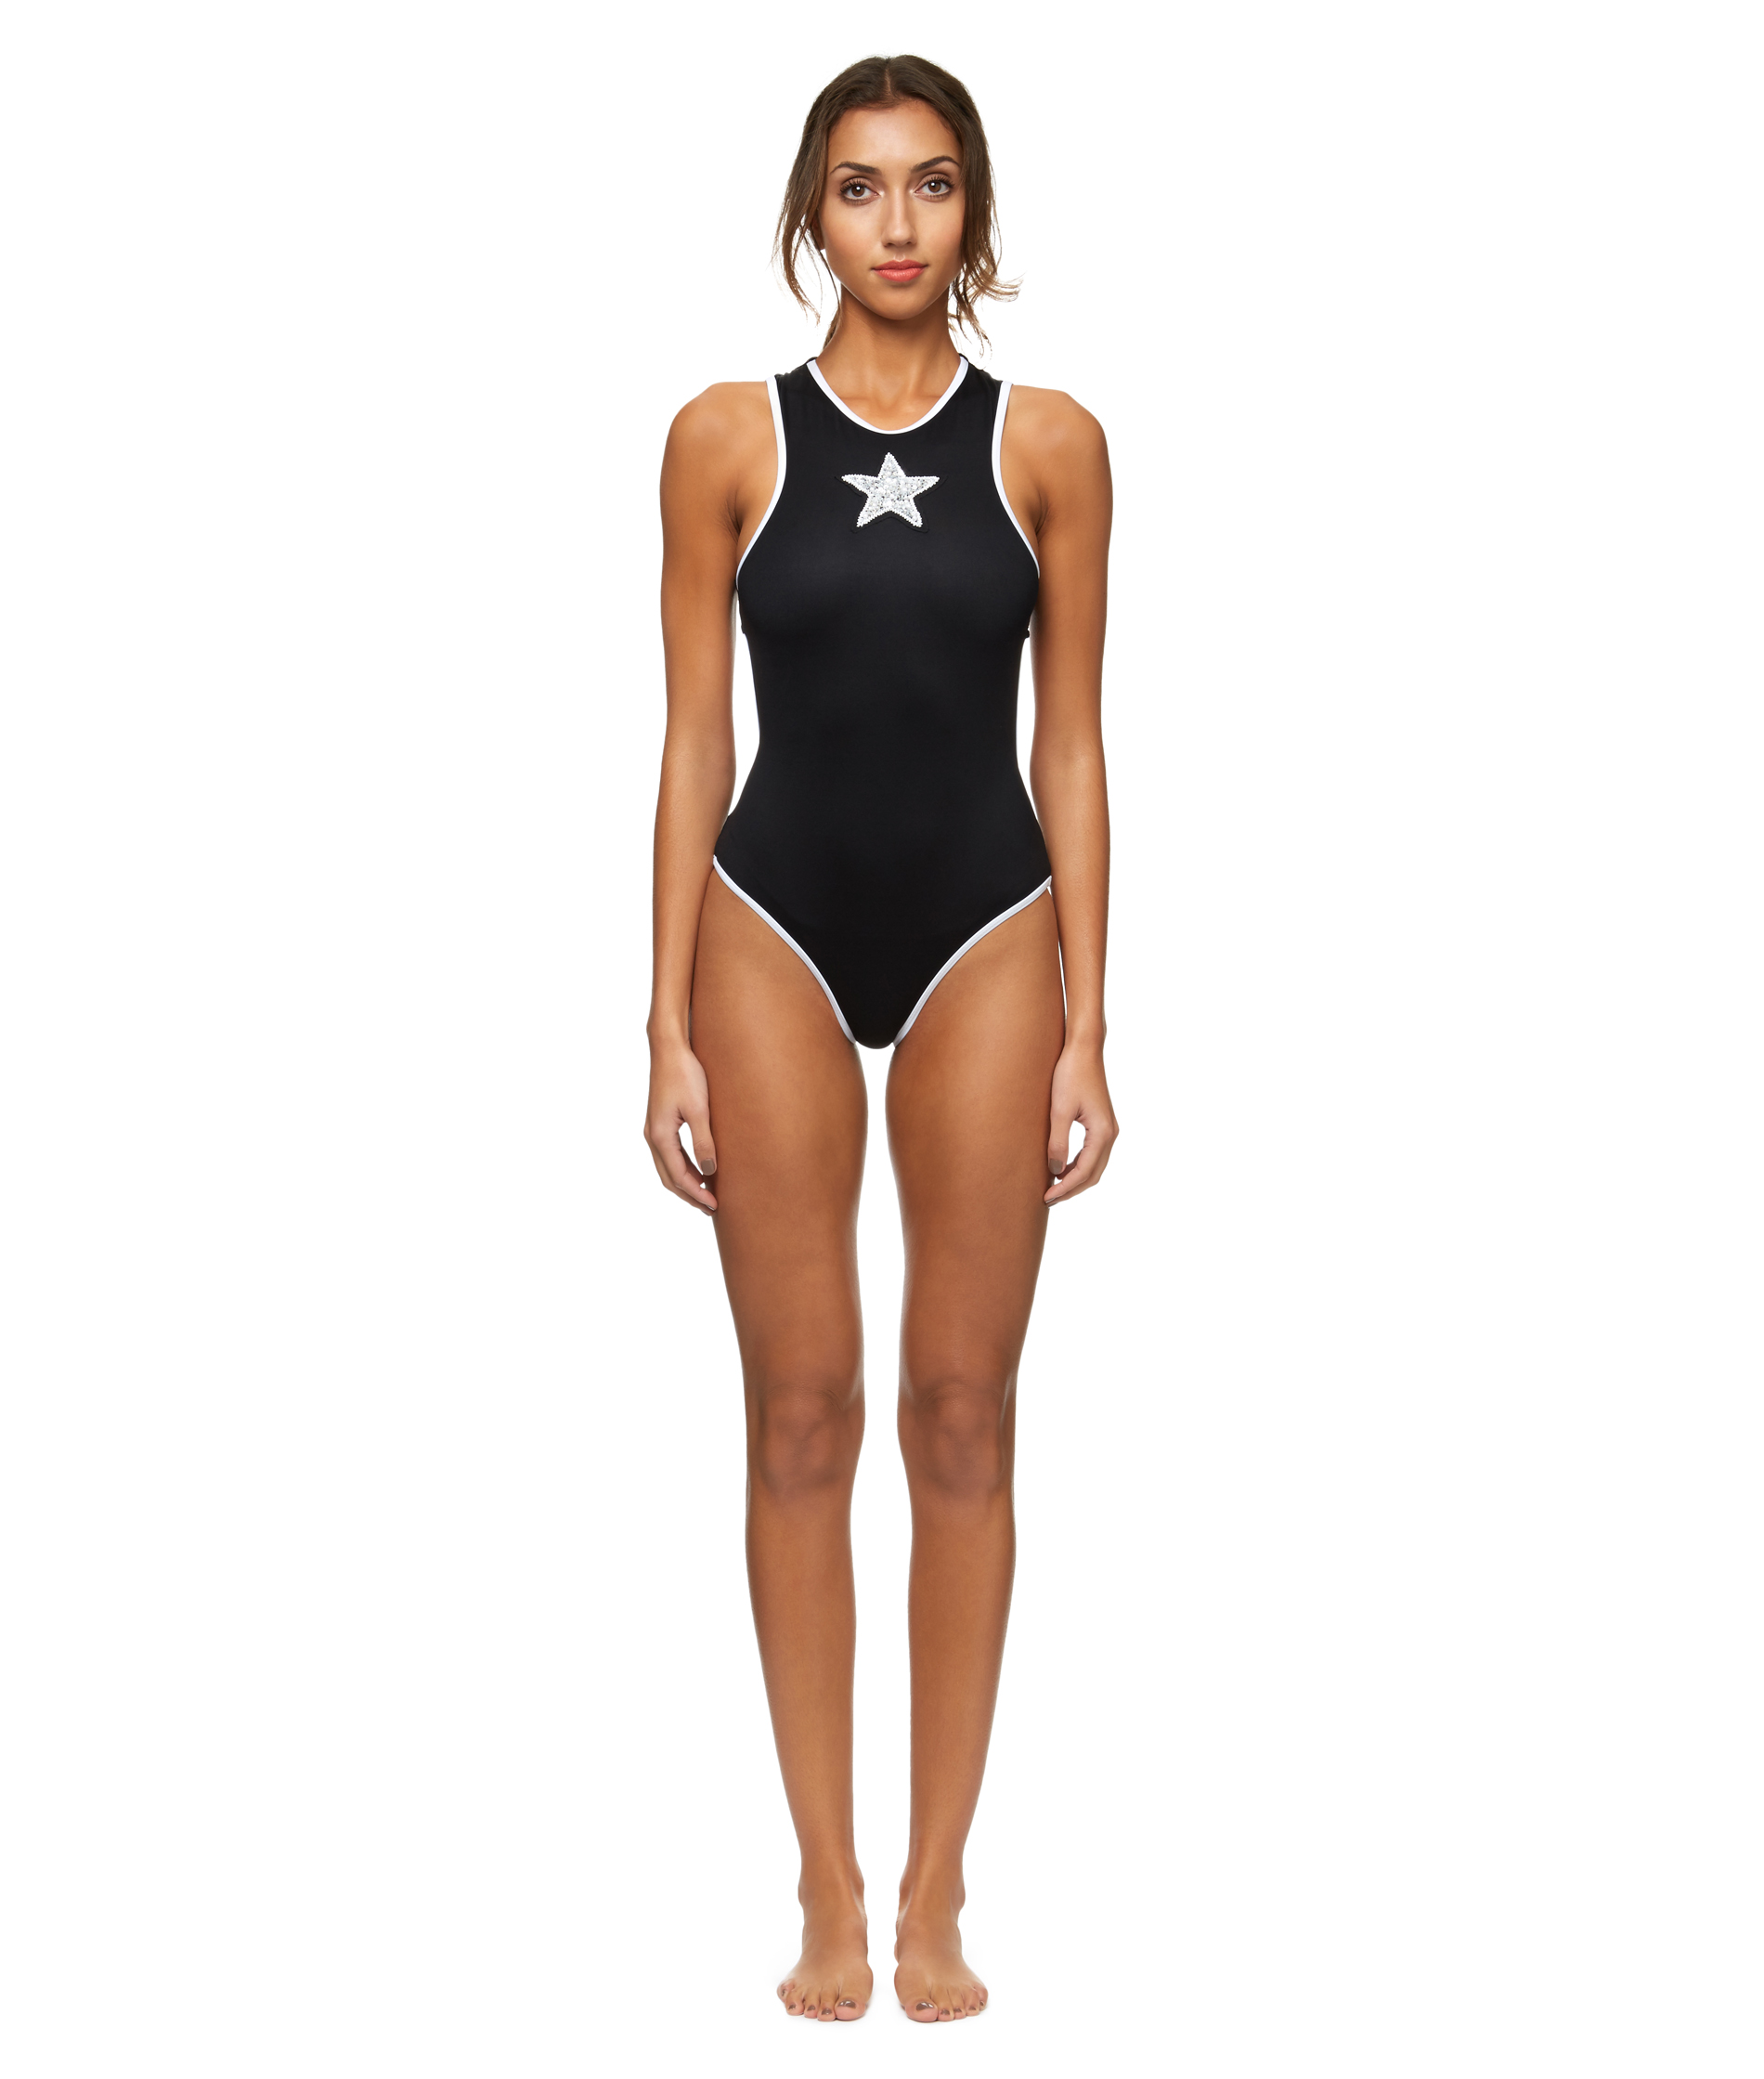 Lola | High neck embroidered swimsuit